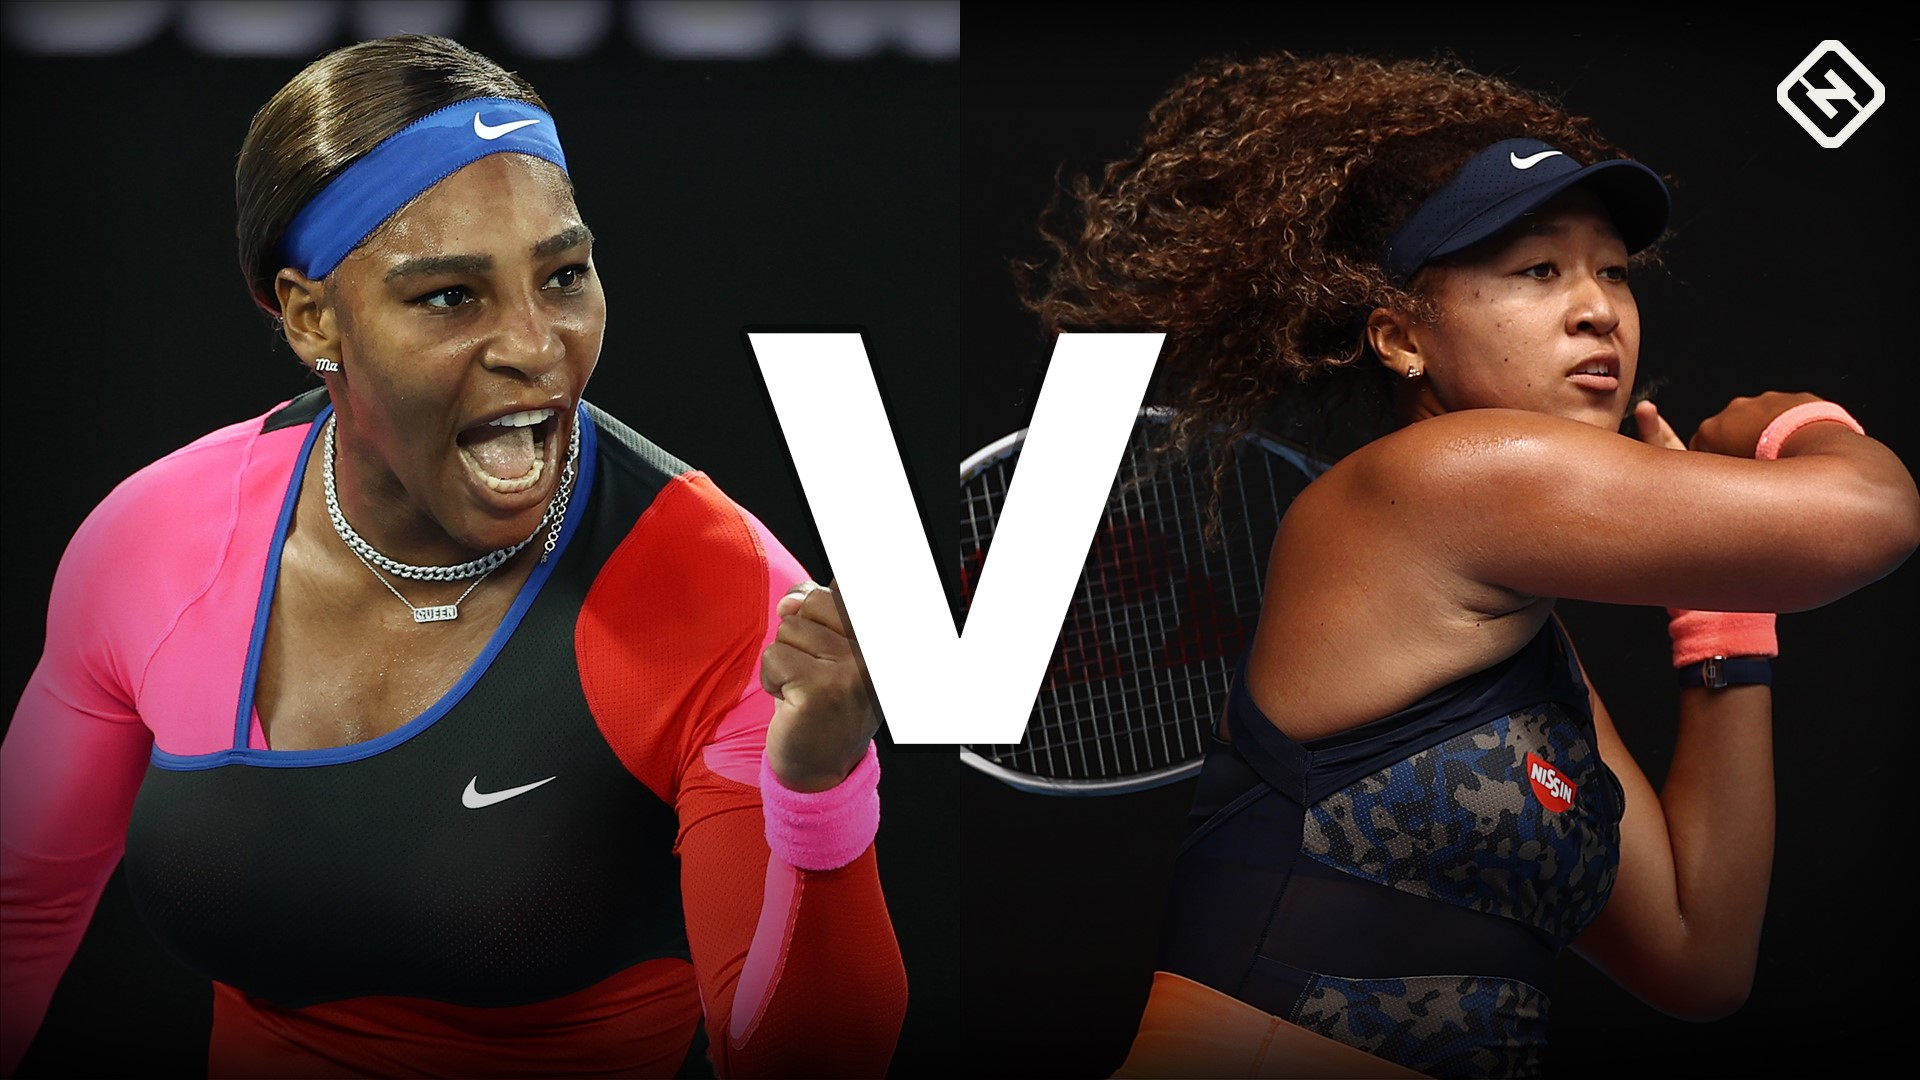 Serena Williams vs. Naomi Osaka time, TV channel, live stream for 2021 Australian Open semifinals thumbnail